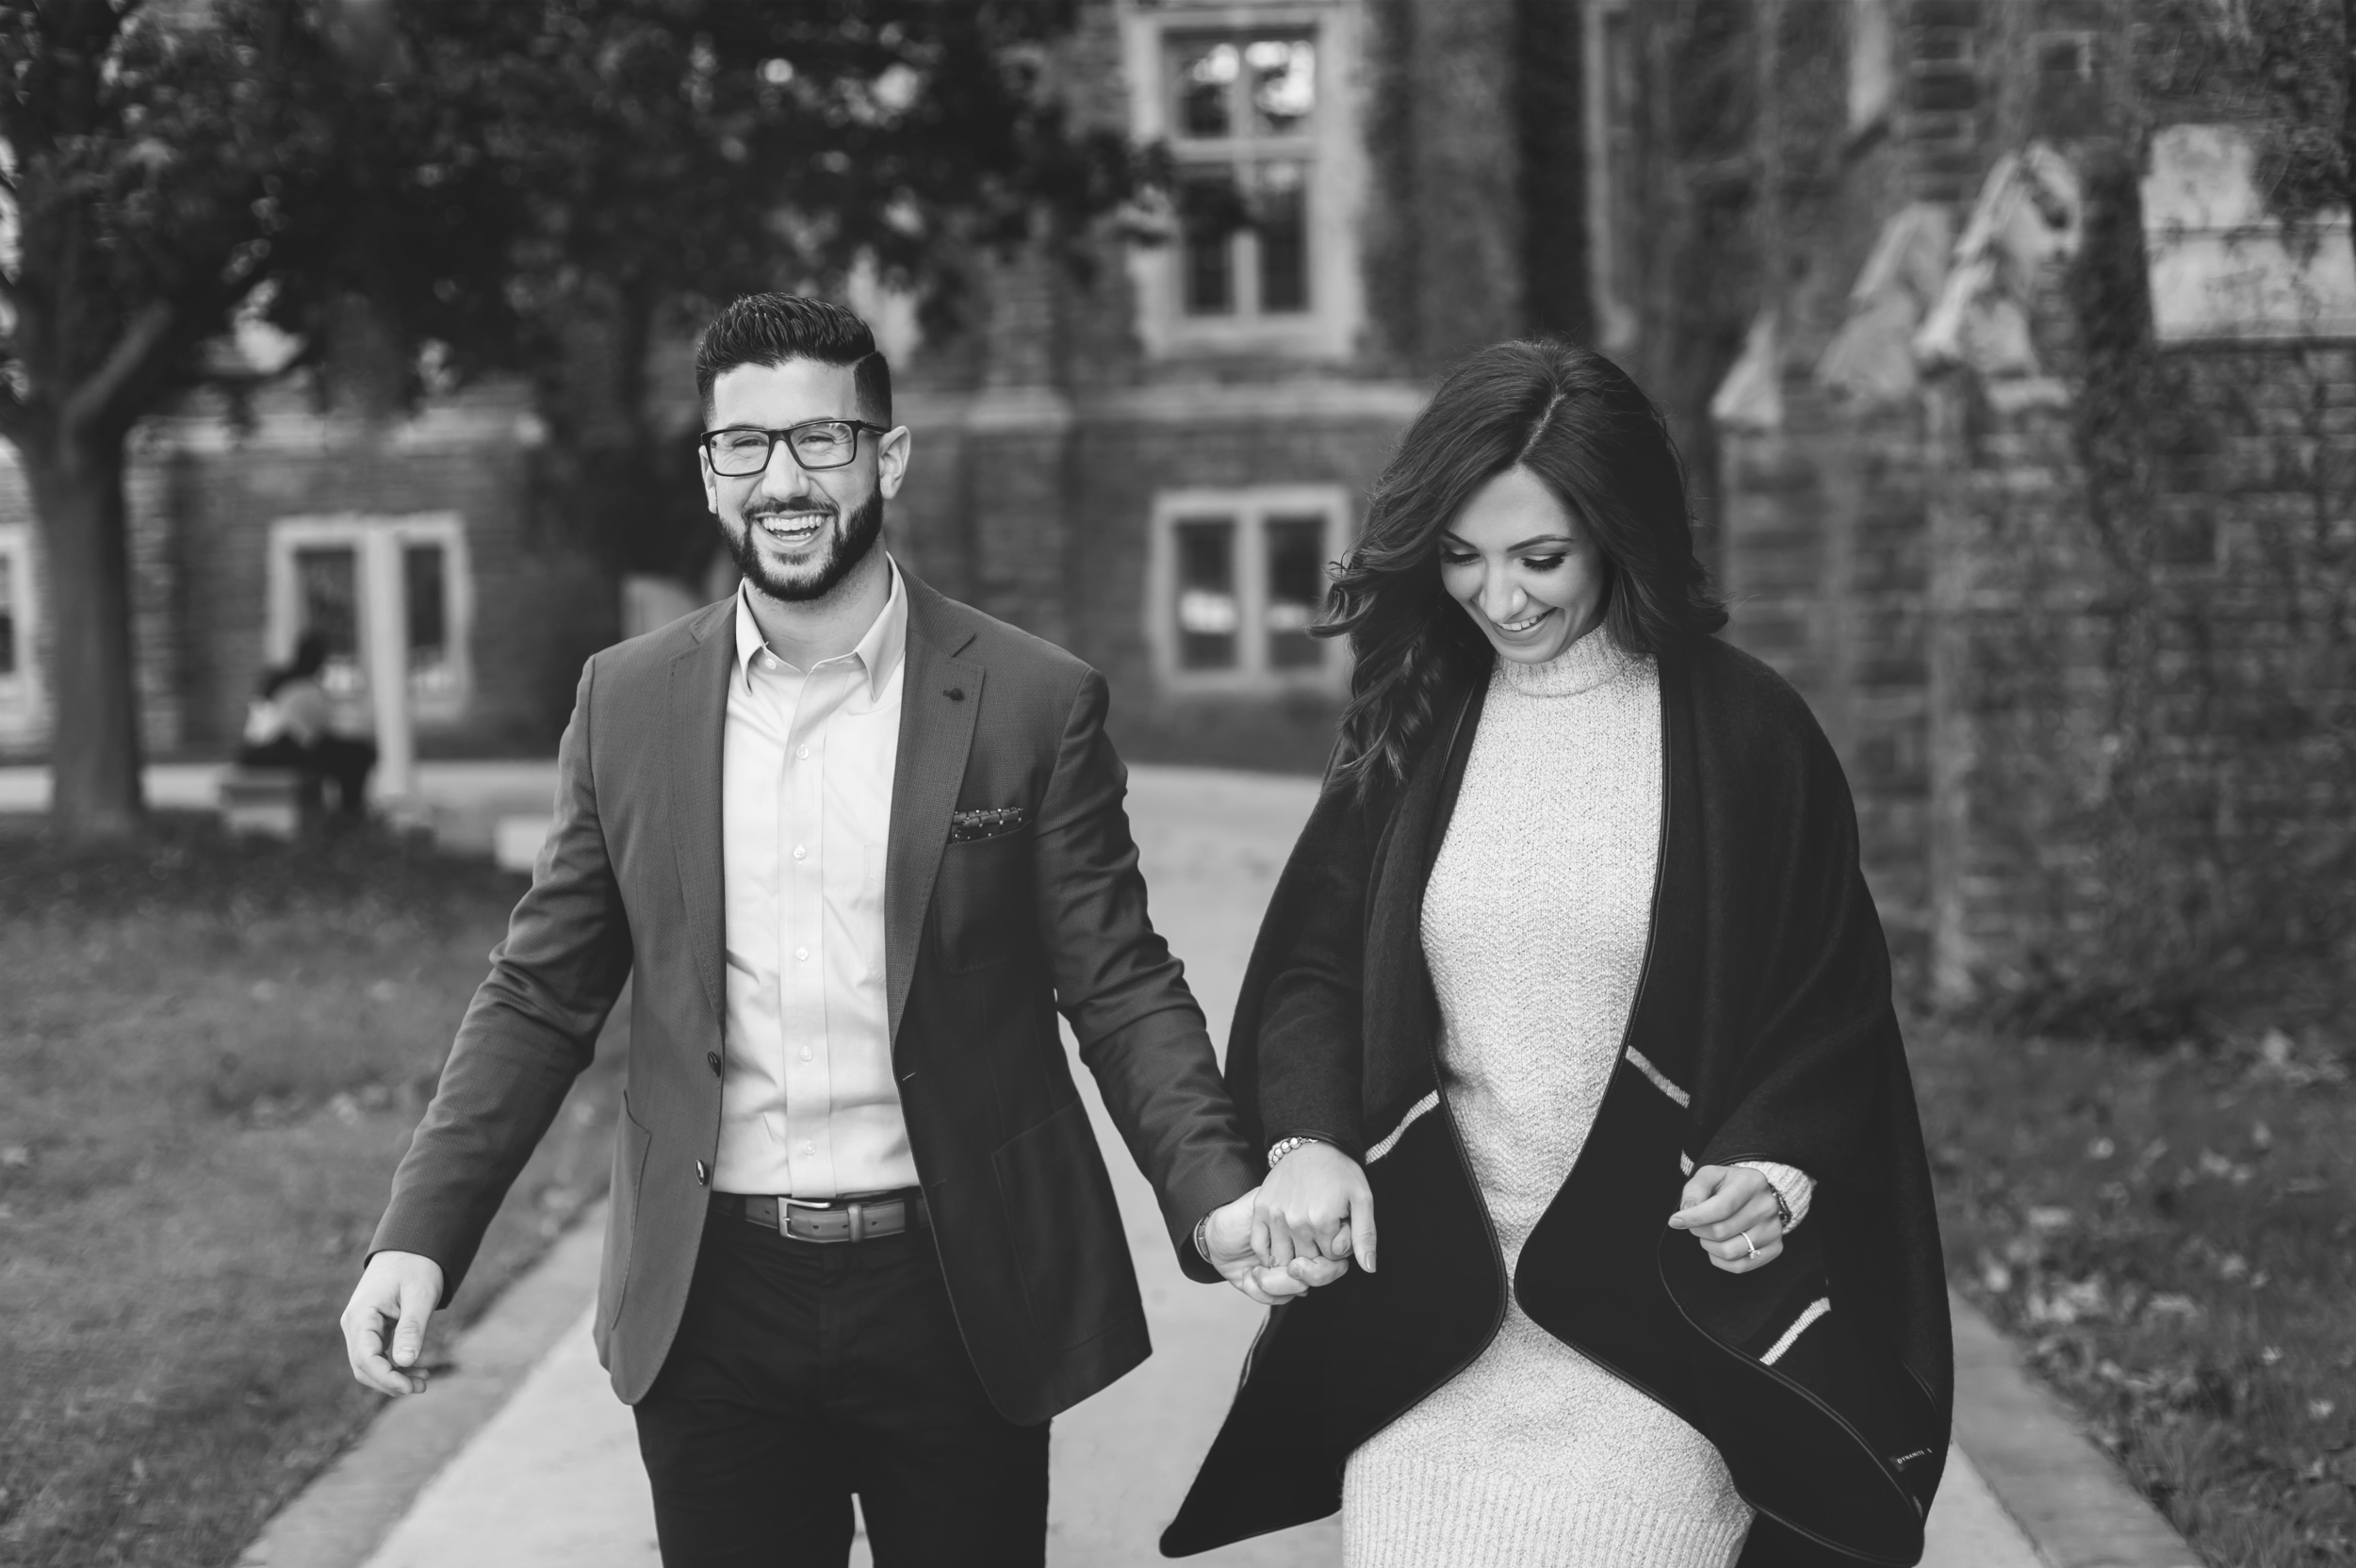 Engagement-Photography-McMaster-University-Campus-Hamilton-Burlington-Oakville-Niagara-Toronto-Wedding-Photographer-Moments-by-Lauren-Photo-Image-5.png